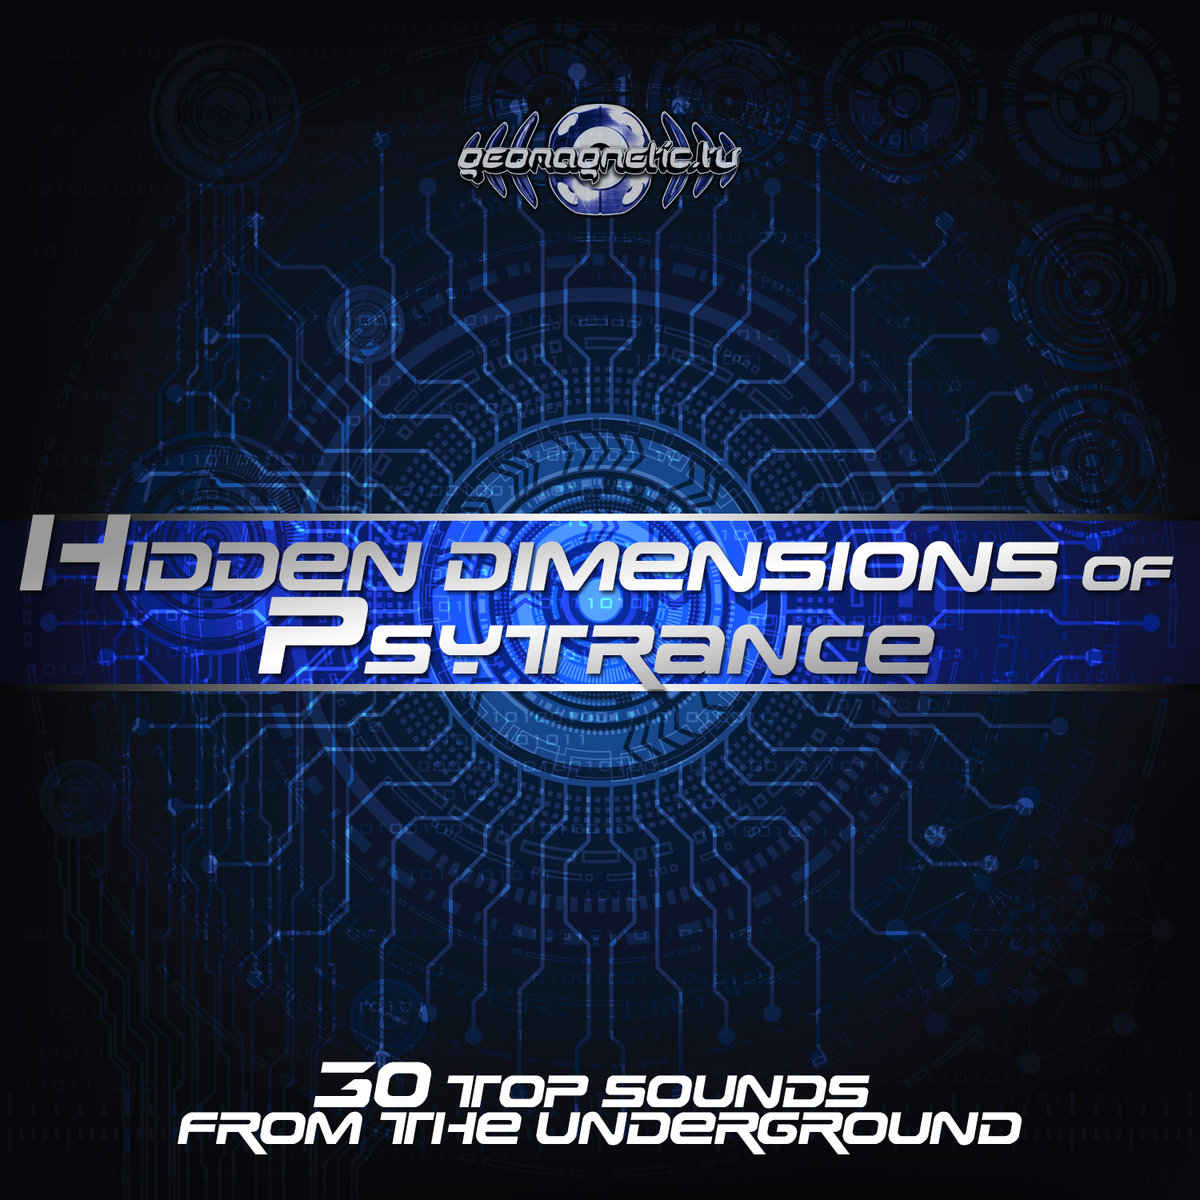 Psypheric - Final Blockpost @ 'Various Artists - Hidden Dimensions of Psytrance (30 Top Sounds From The Underground)' album (electronic, goa)